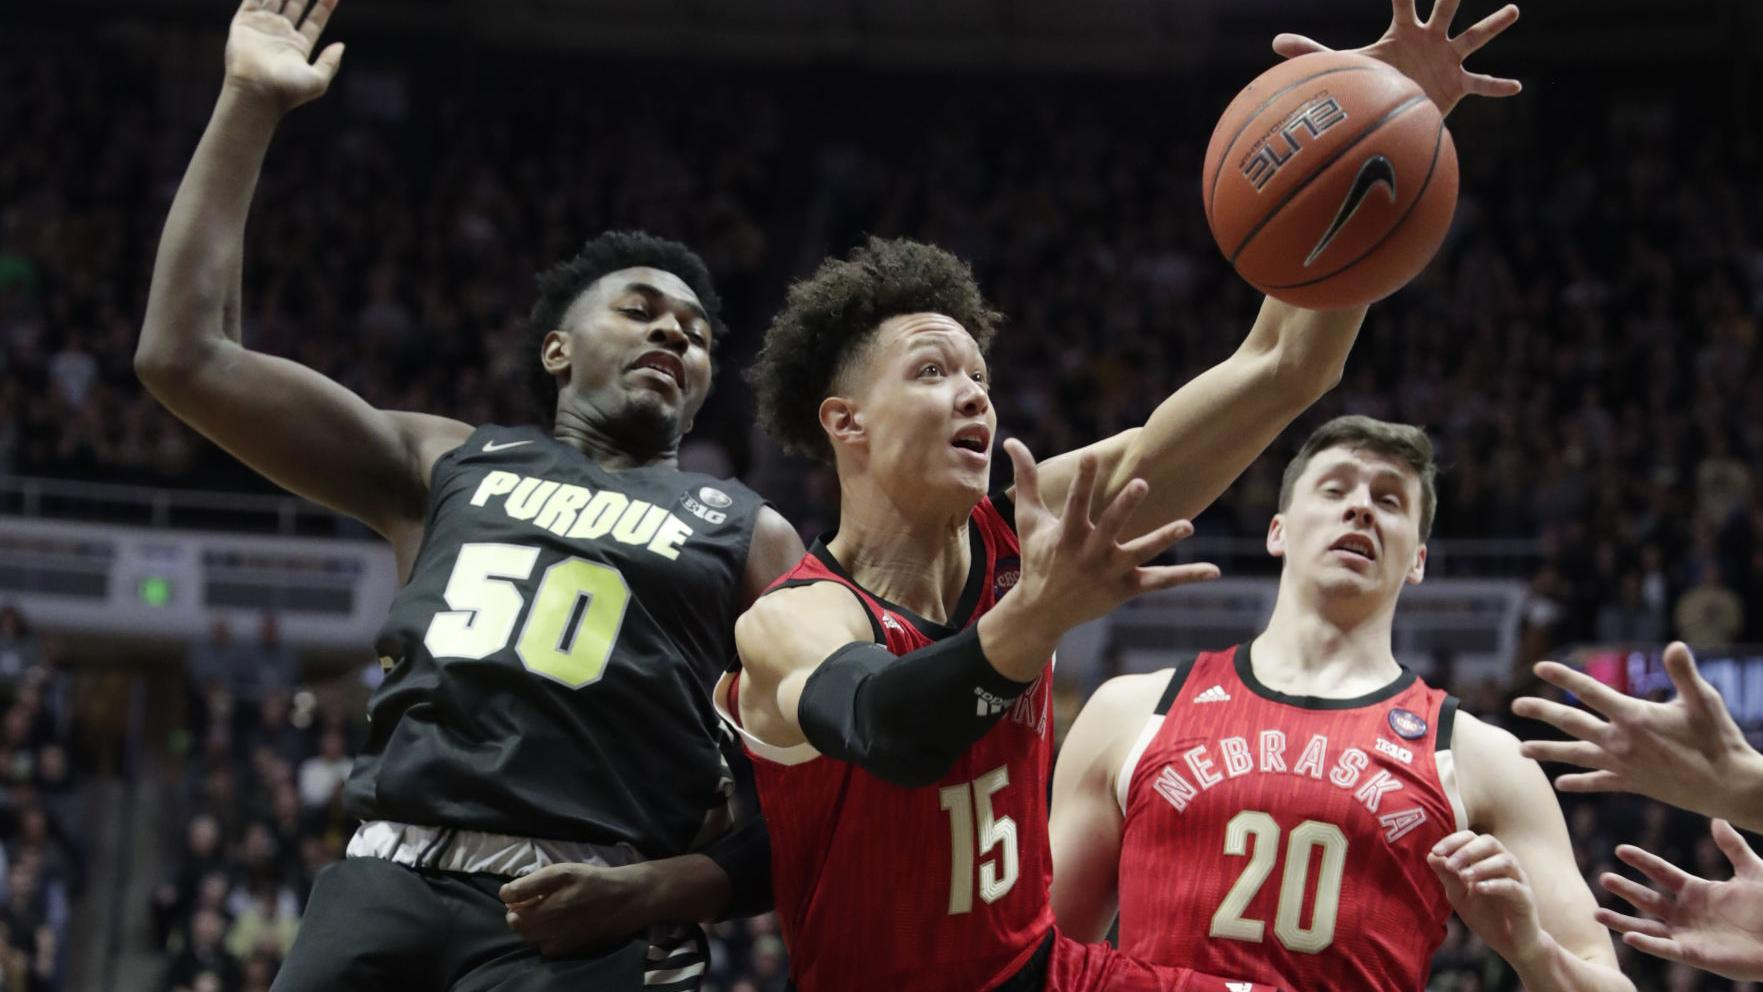 Blizzard warning prompts Huskers-Purdue basketball to move to 1 p.m. tip